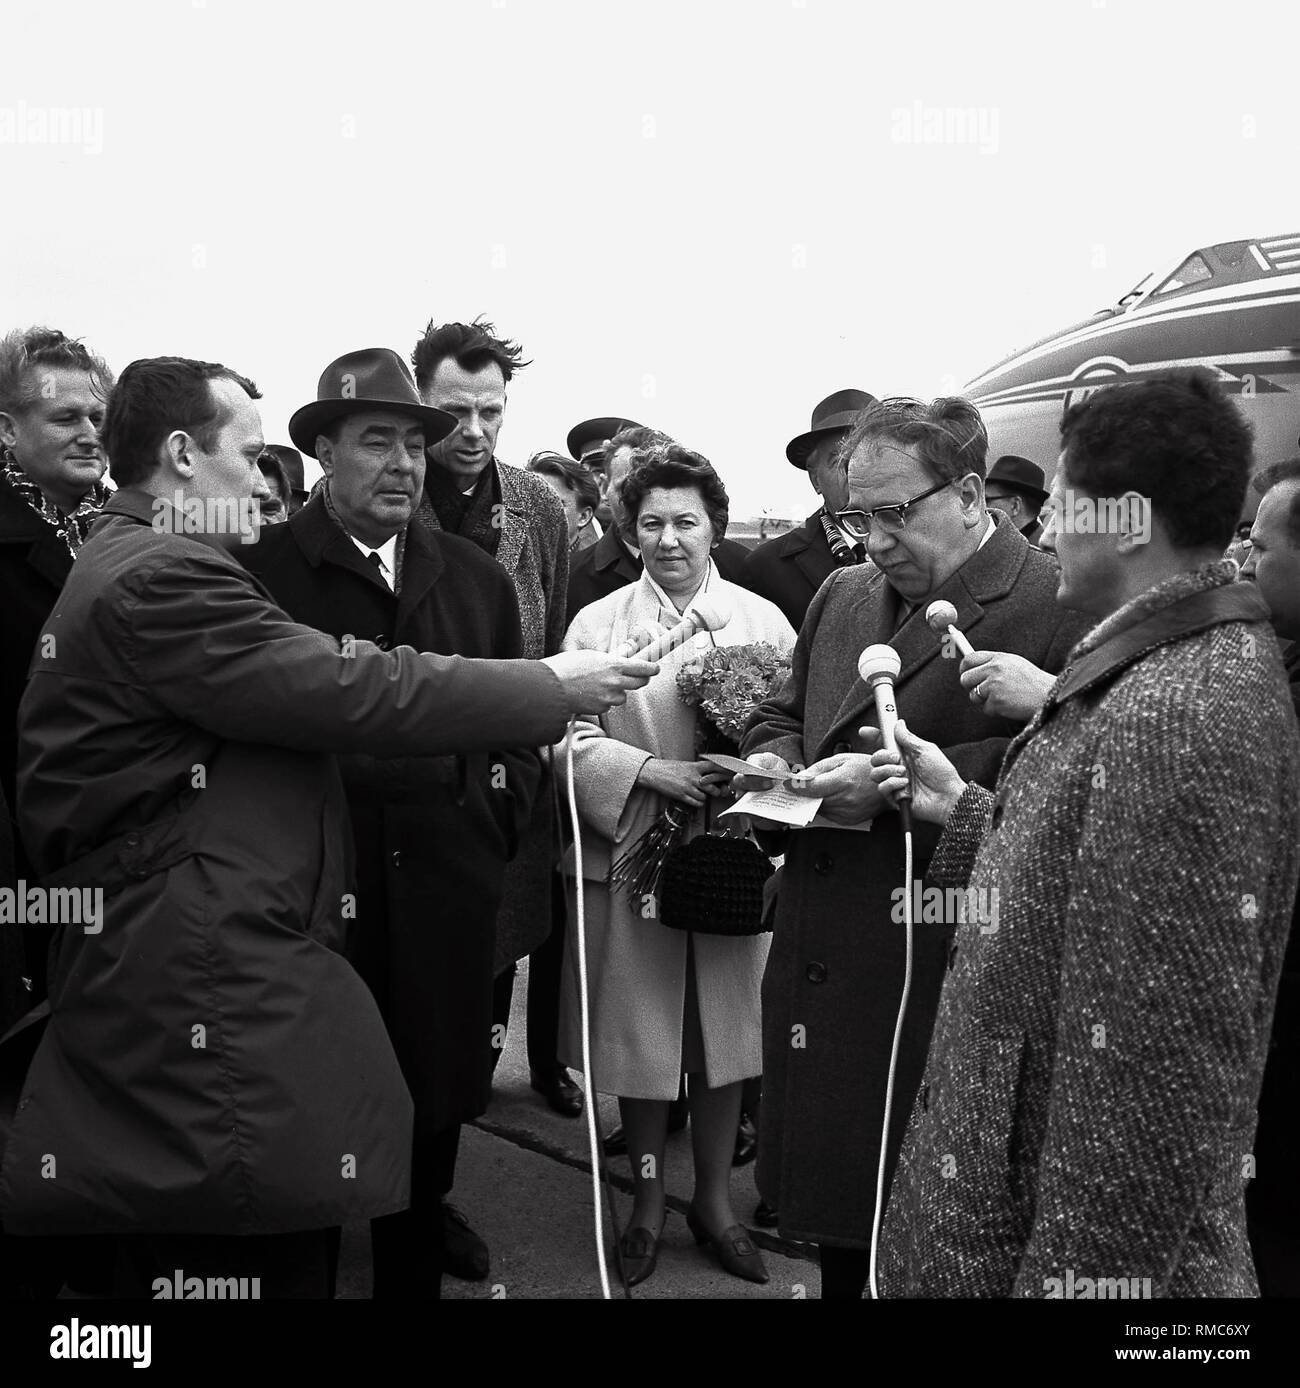 The General Secretary of the CPSU, Leonid Brezhnev, at the airport in Erfurt. (undated photo) - Stock Image